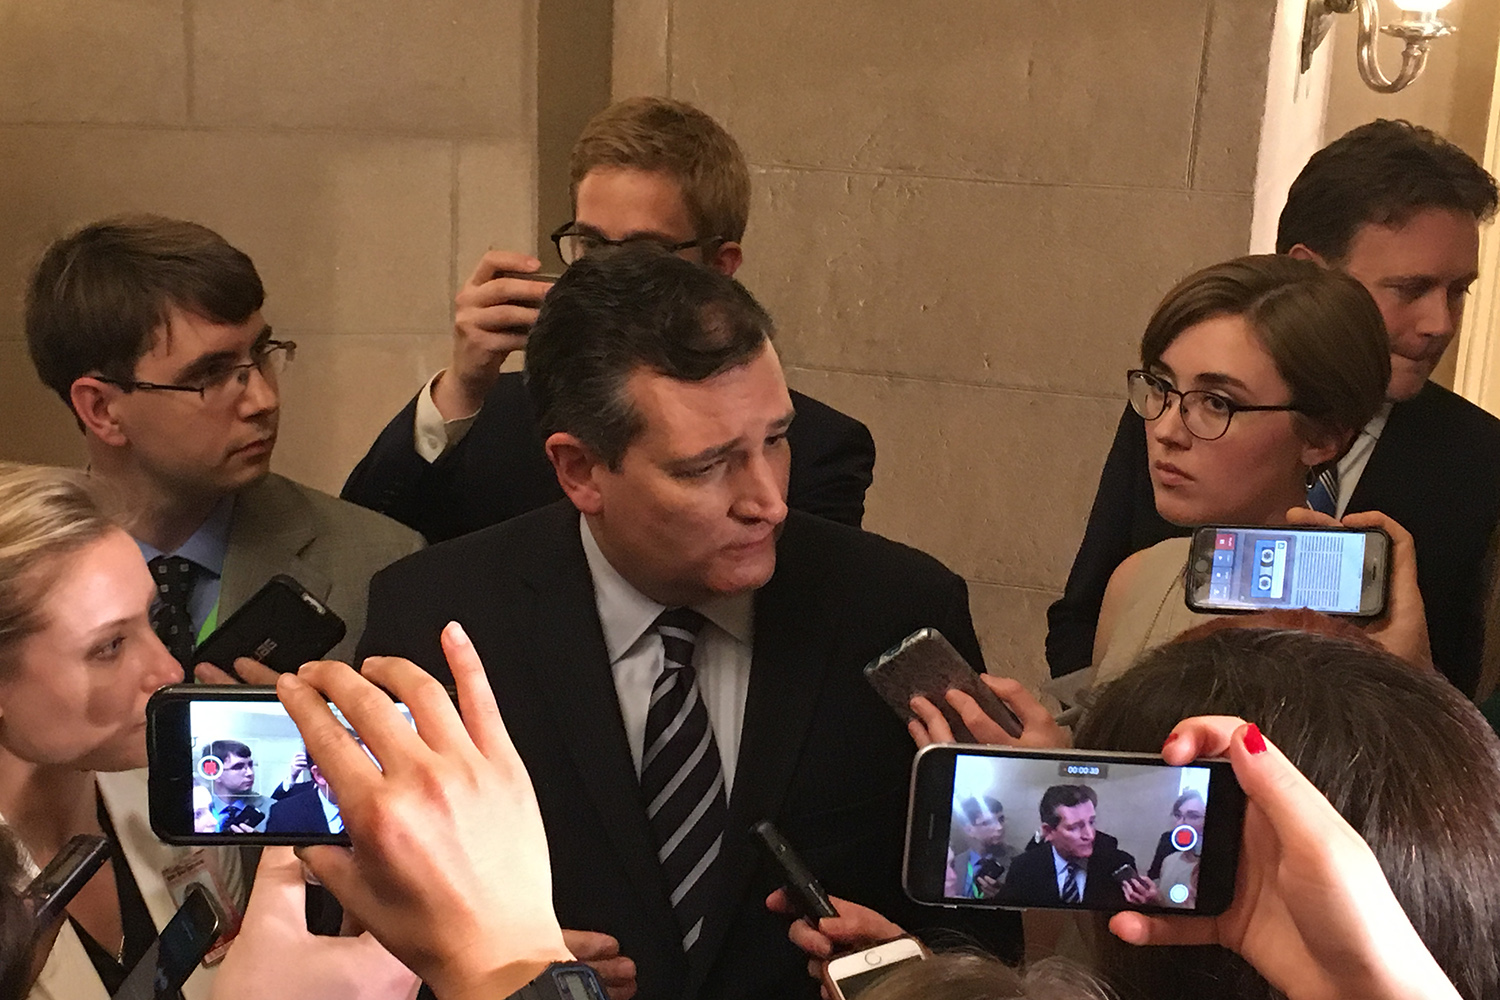 Speaking to reporters after President Donald Trump's address, U.S. Sen. Ted Cruz said the address